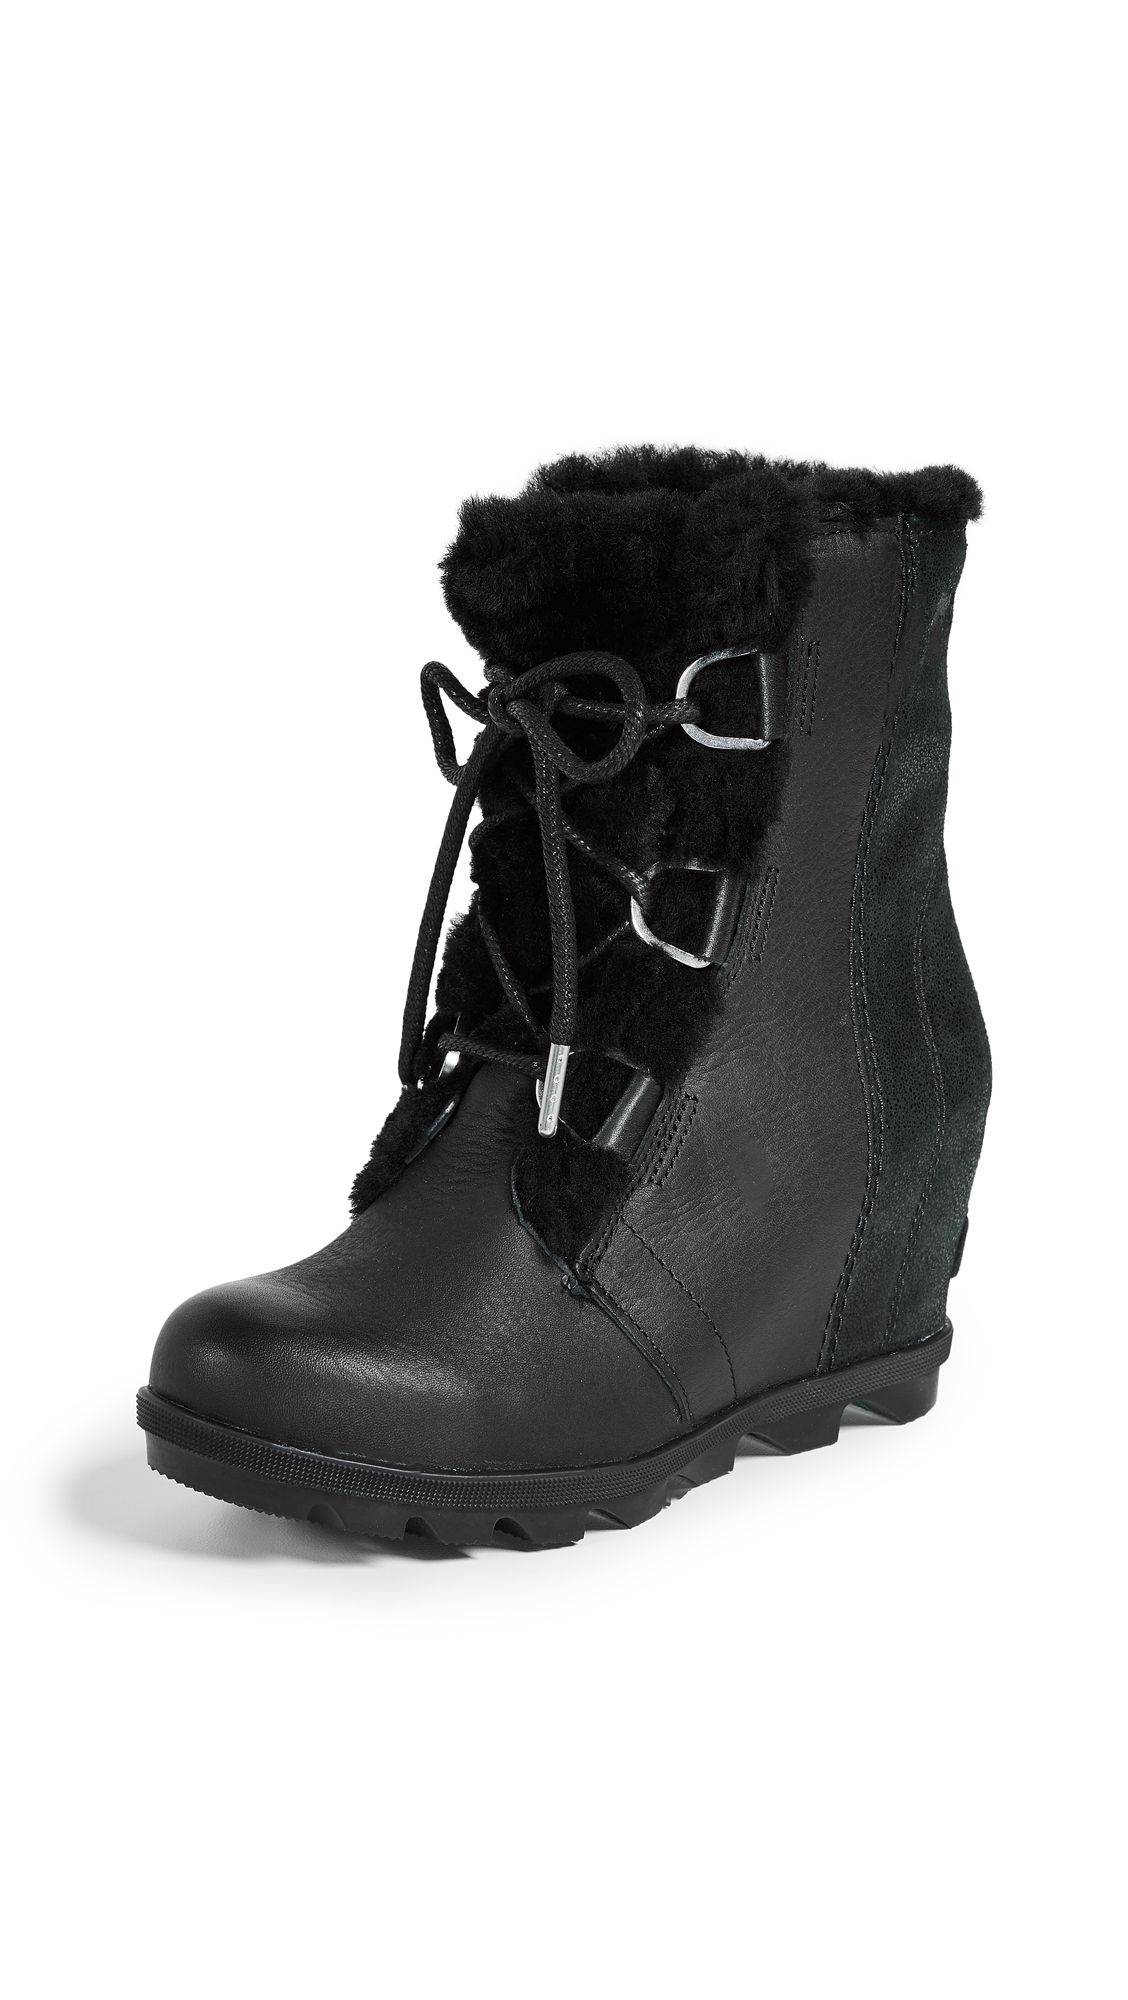 a4f90fb2cb8 Joan of Arctic Wedge II Shearling Boots by Sorel in Black in 2019 ...